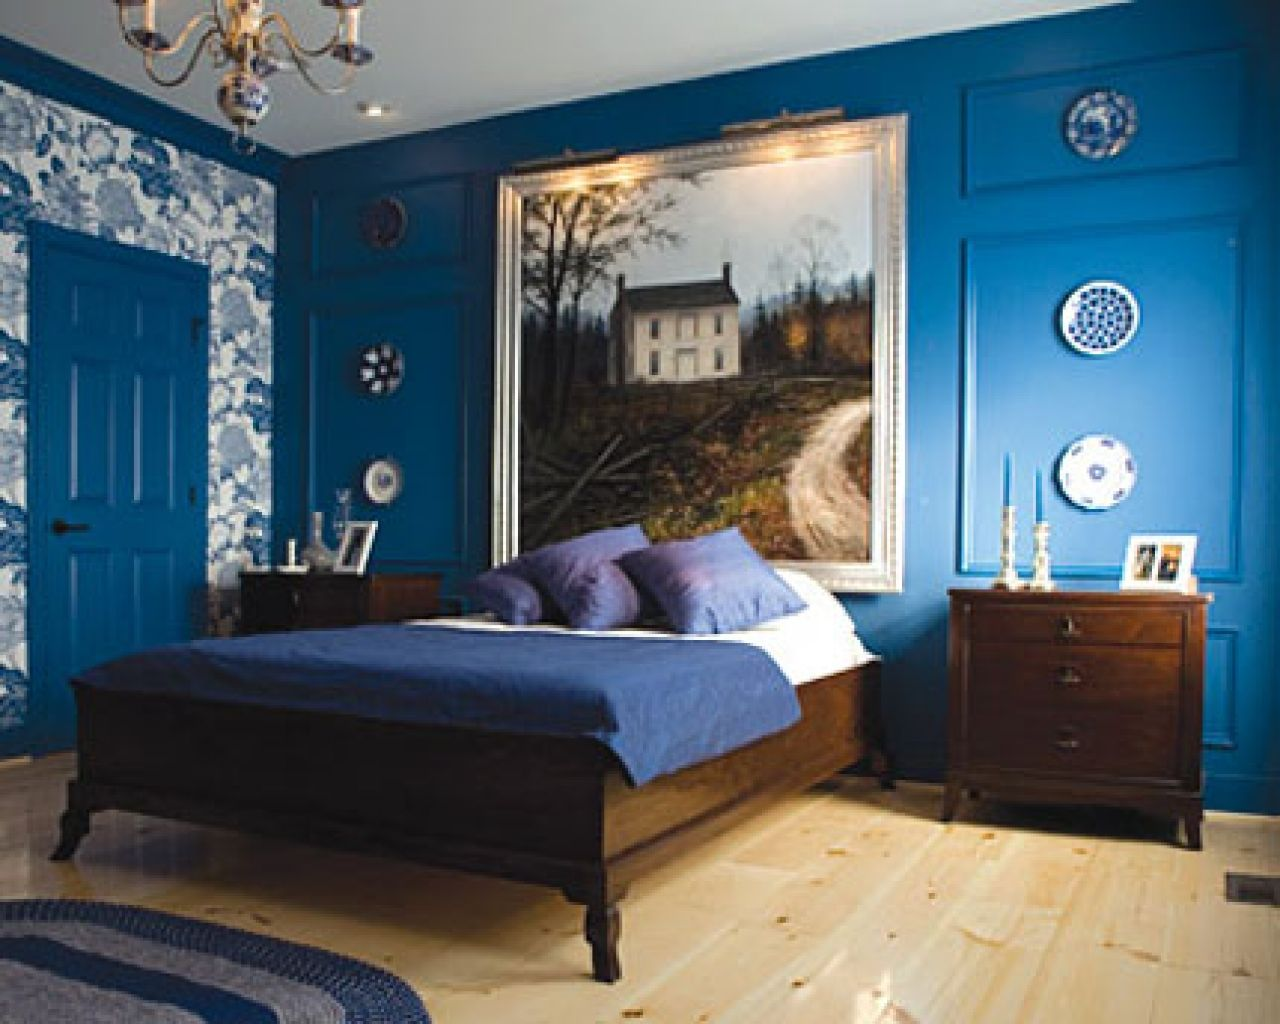 bedroom painting design ideas pretty natural bedroom paint ideas cute blue wall idp interior